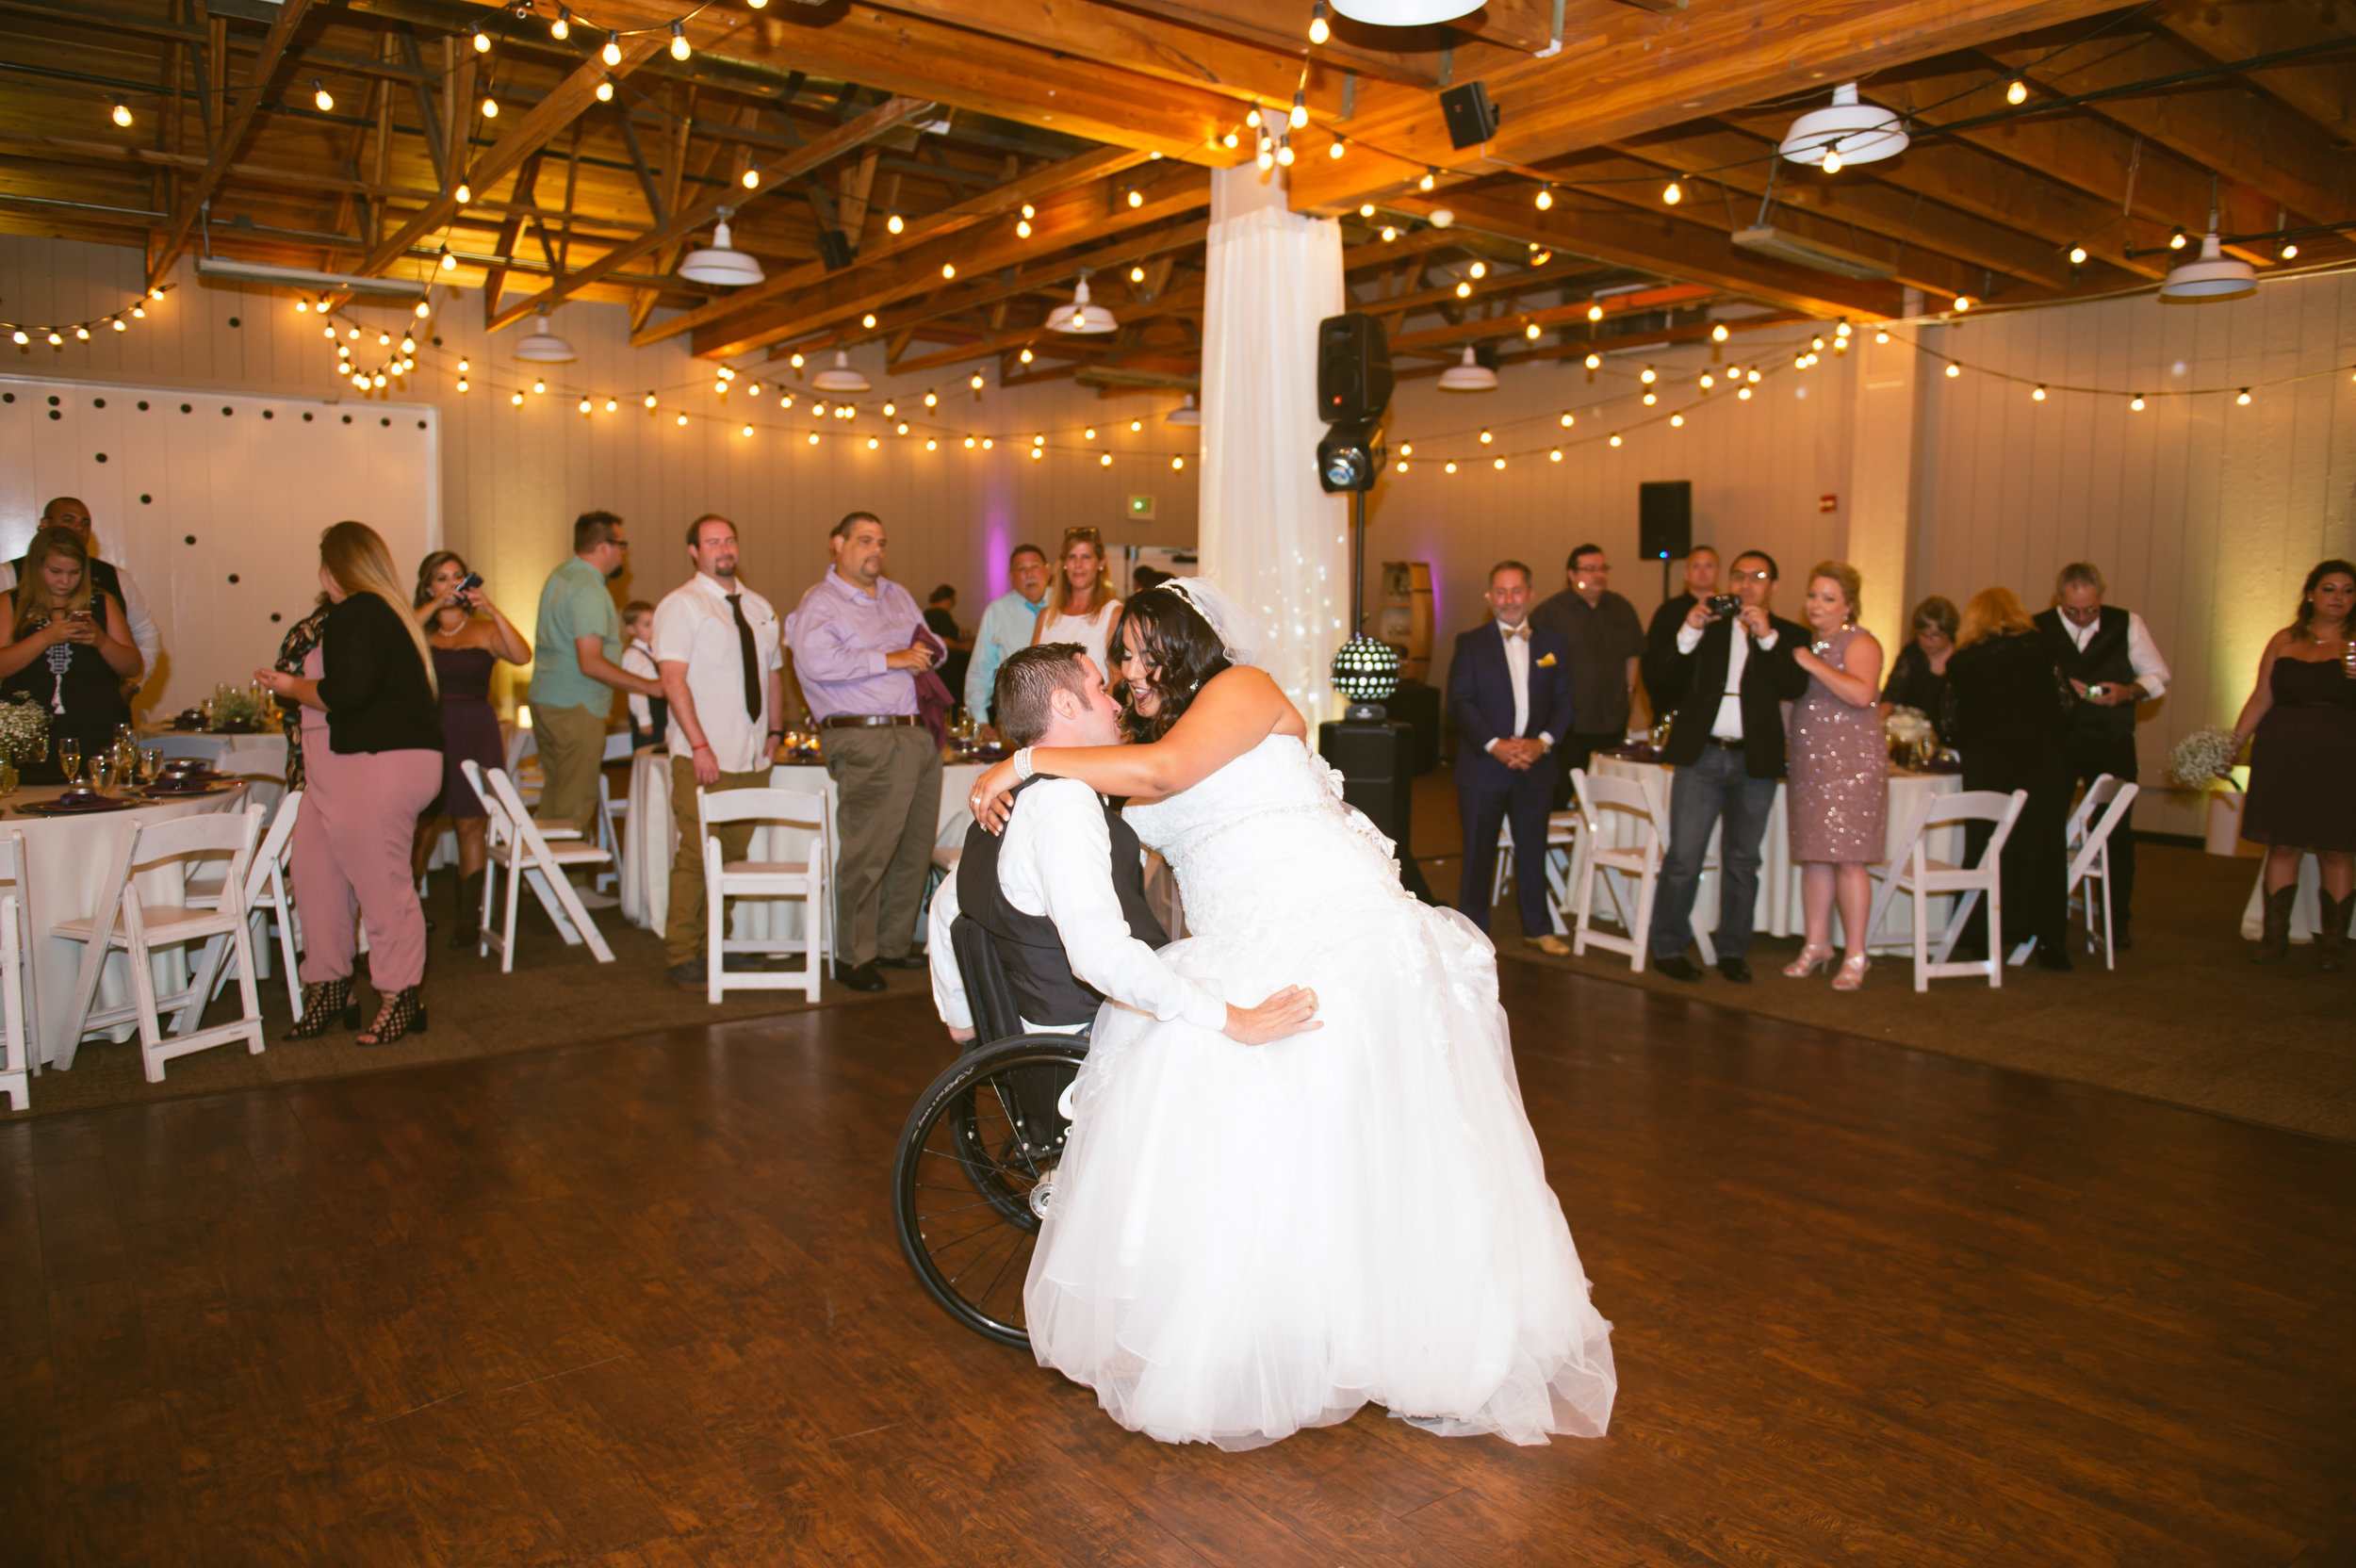 28strawberryfarmsweddingpicturesmichellejohnsonphotography.jpg